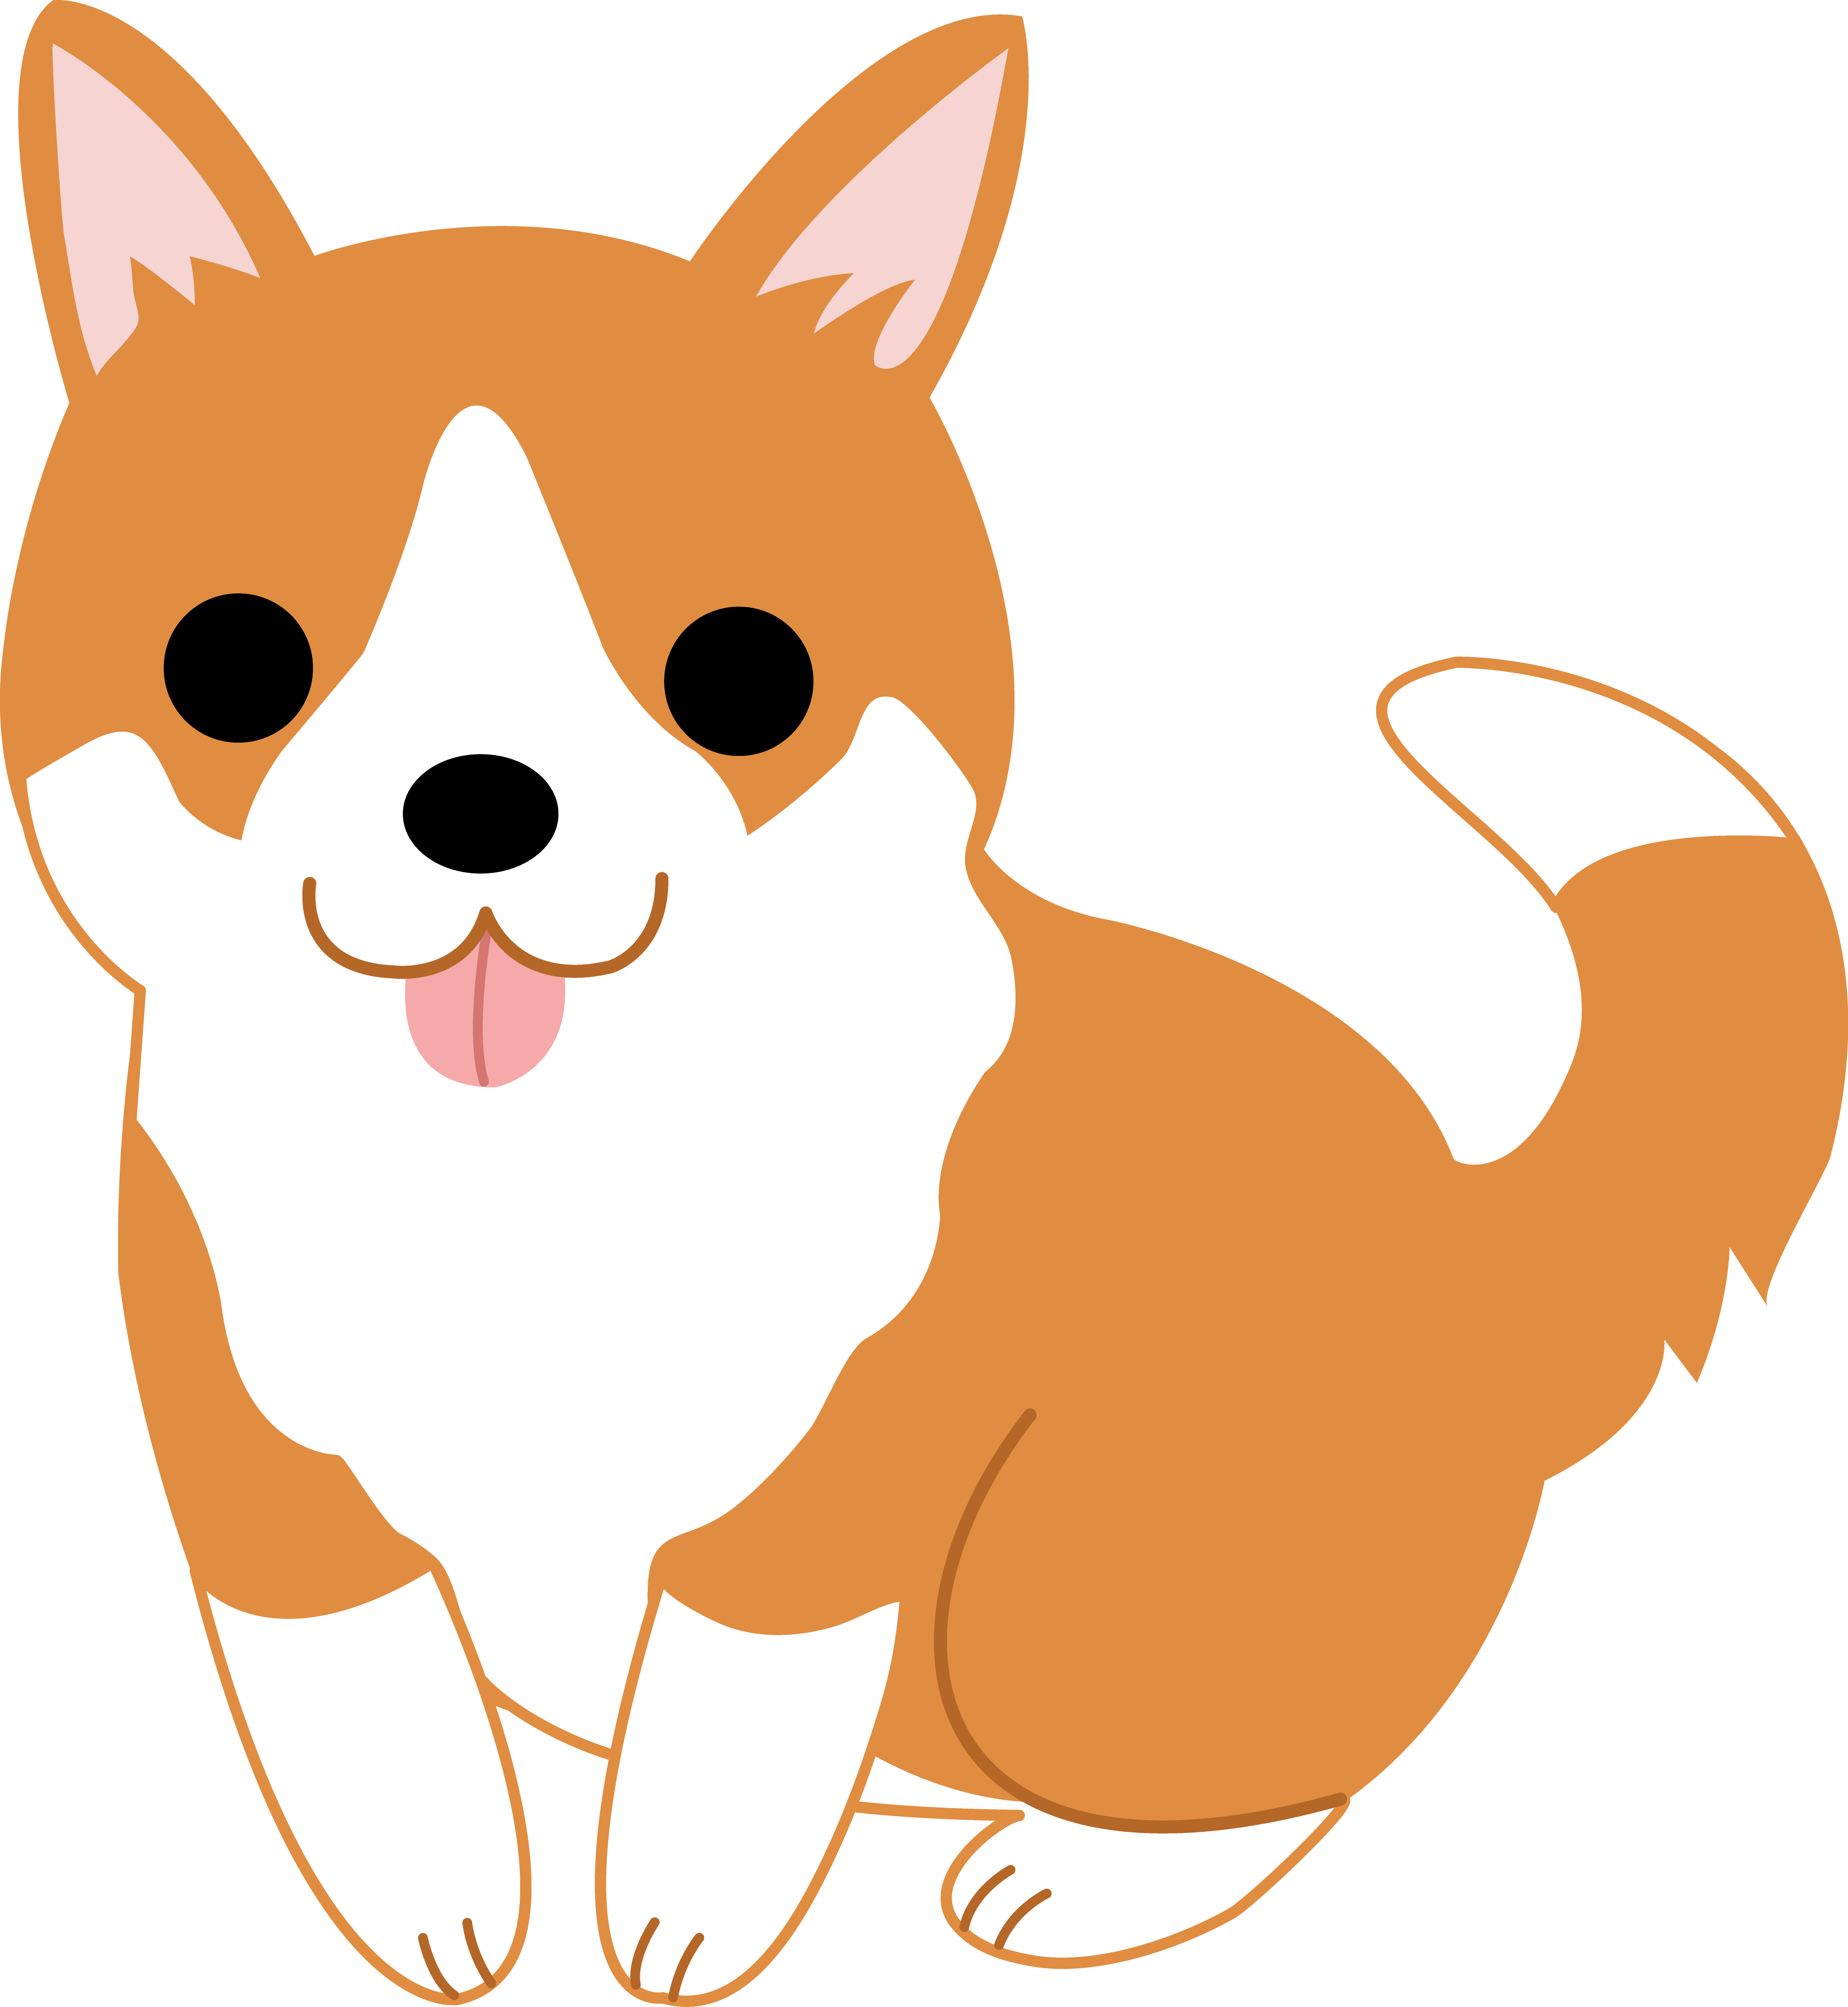 Cute Puppy Dog Clipart free image